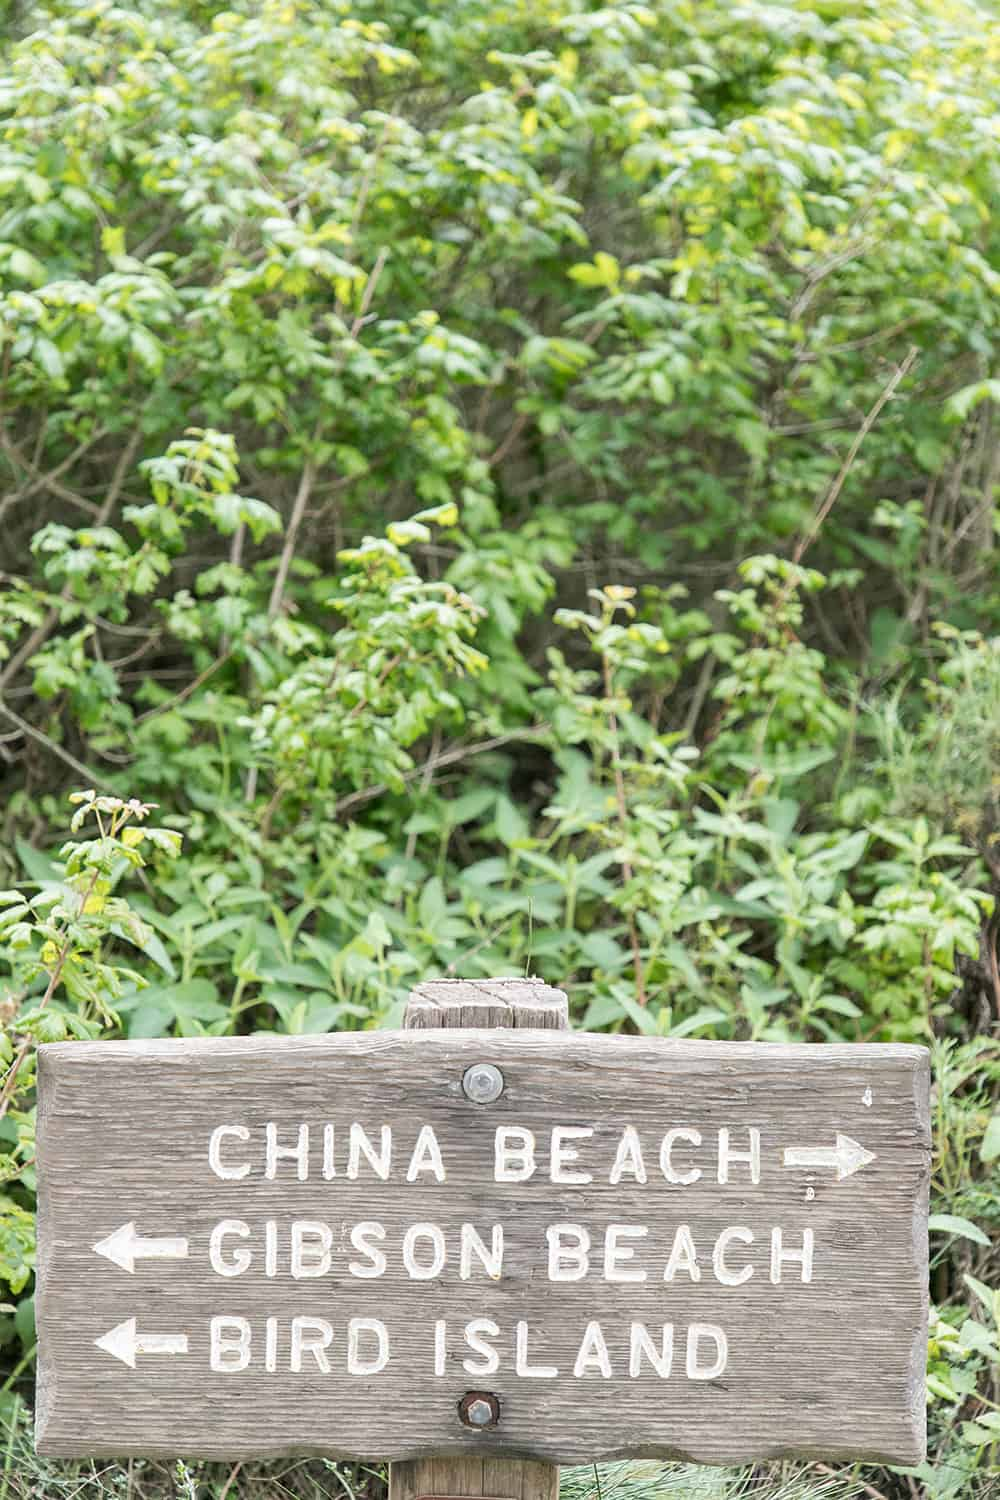 wooden beach sign that sign china beach, gibson beach and bird beach